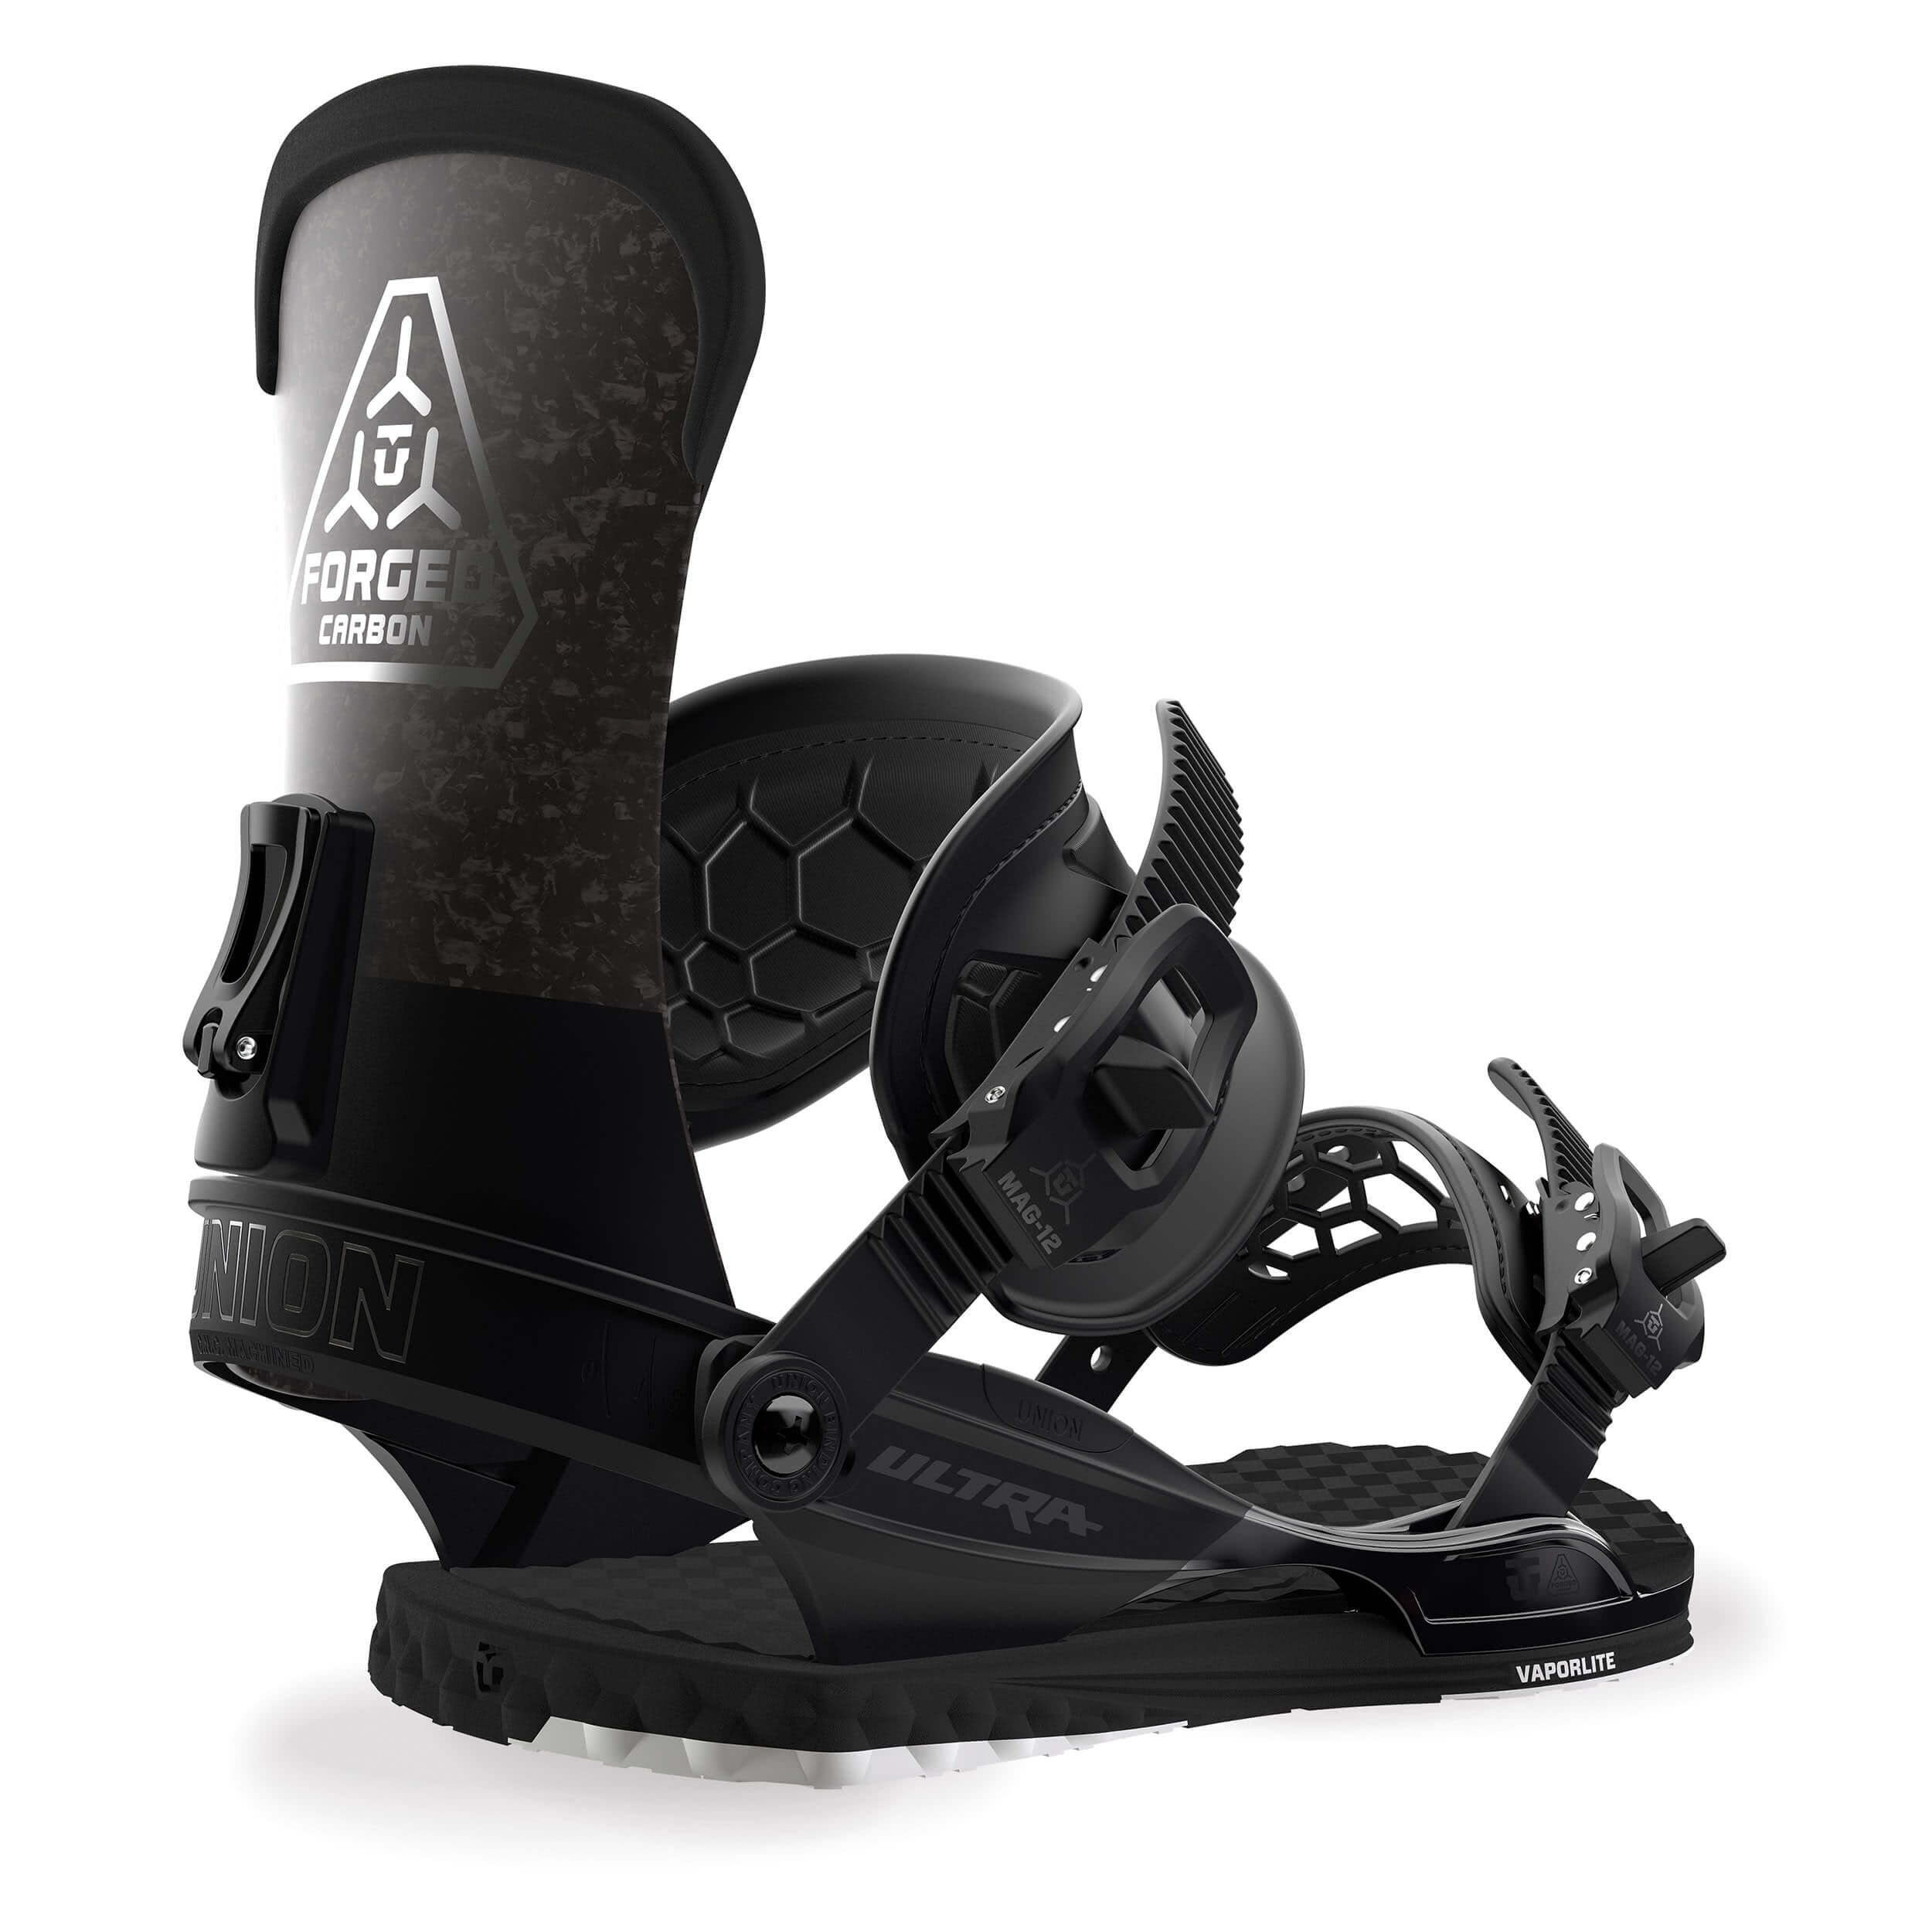 Ultra Black Snowboardbindung Union 2019